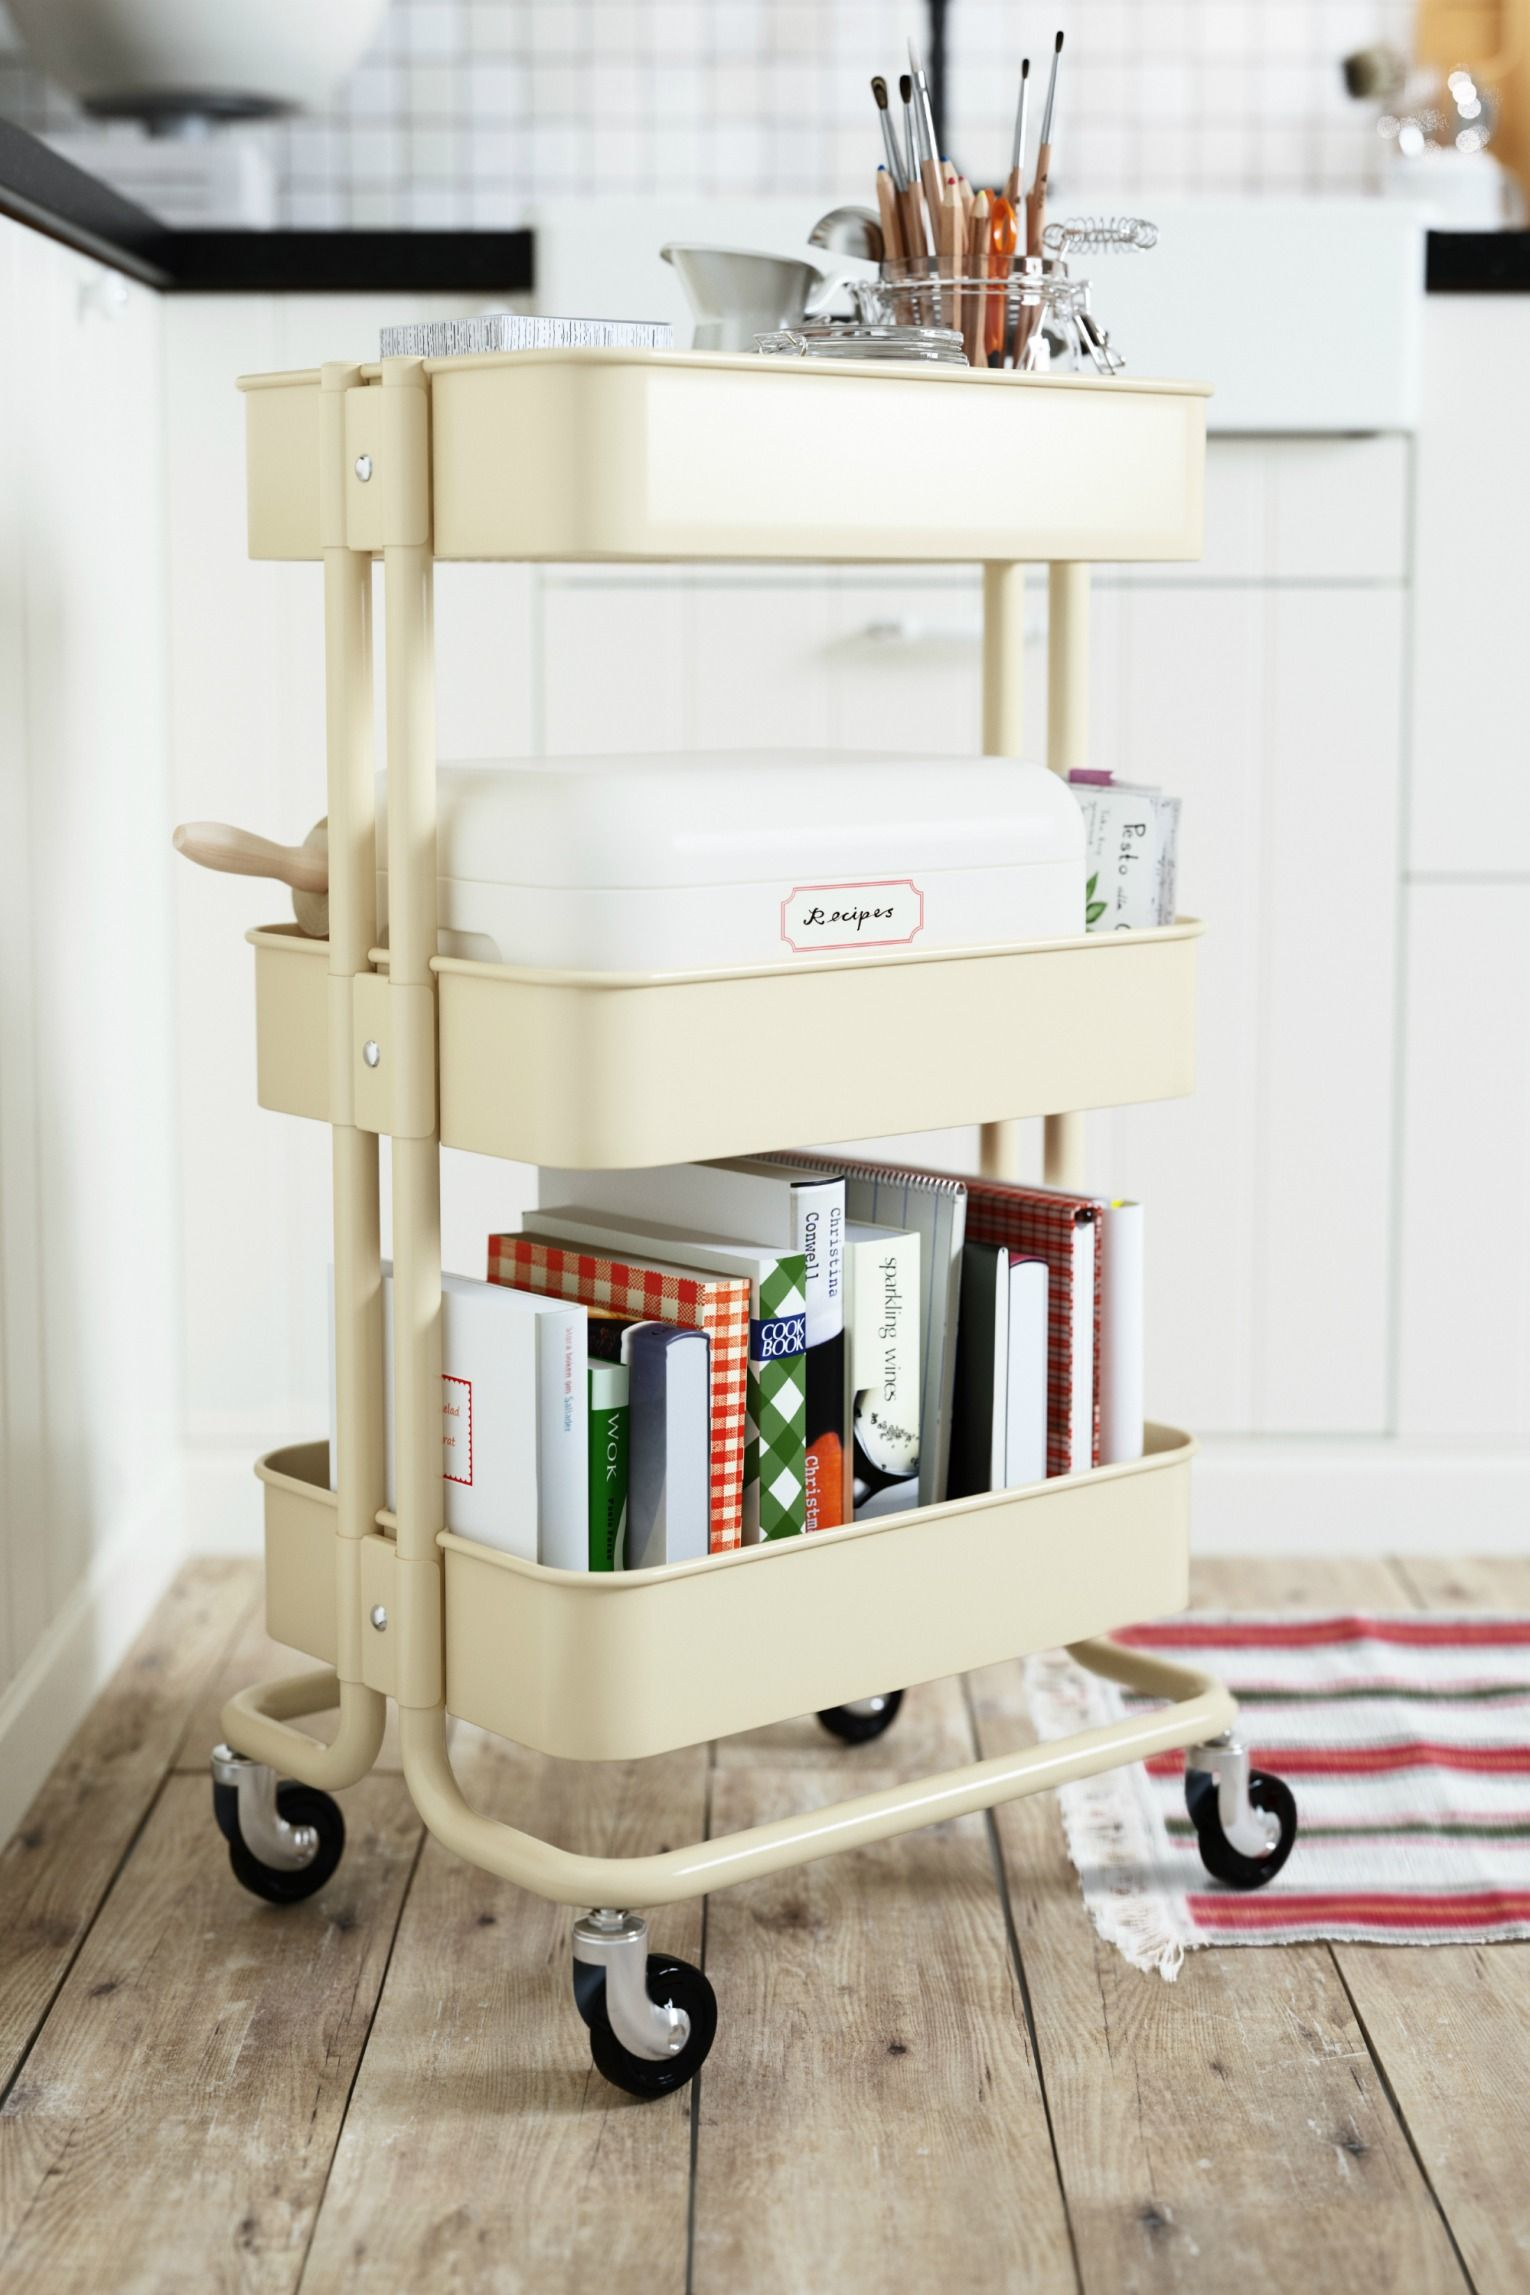 A cart with wheels like the IKEA R…SKOG utility cart provides great storage and